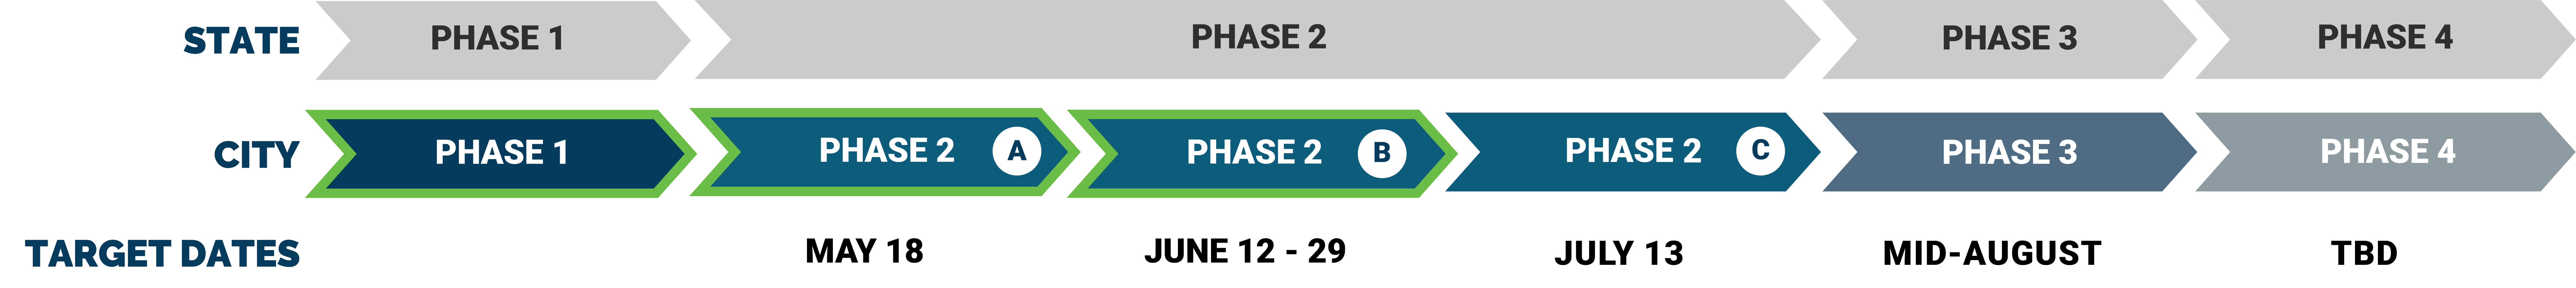 Local vs State Phases 6.23.20.png